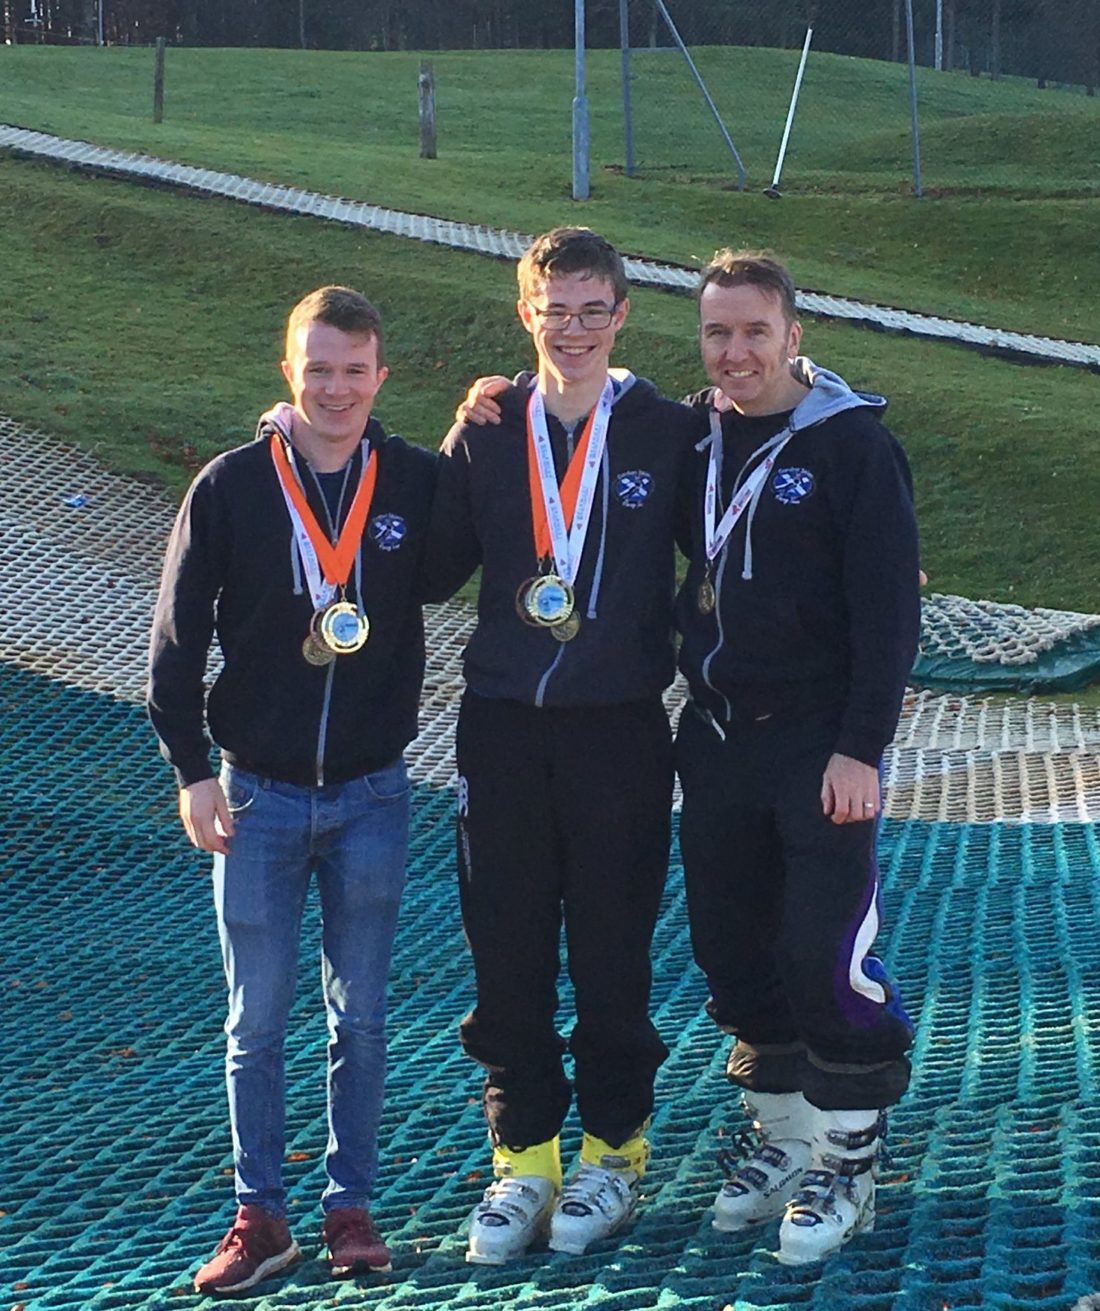 Gordon Skiers medal winners